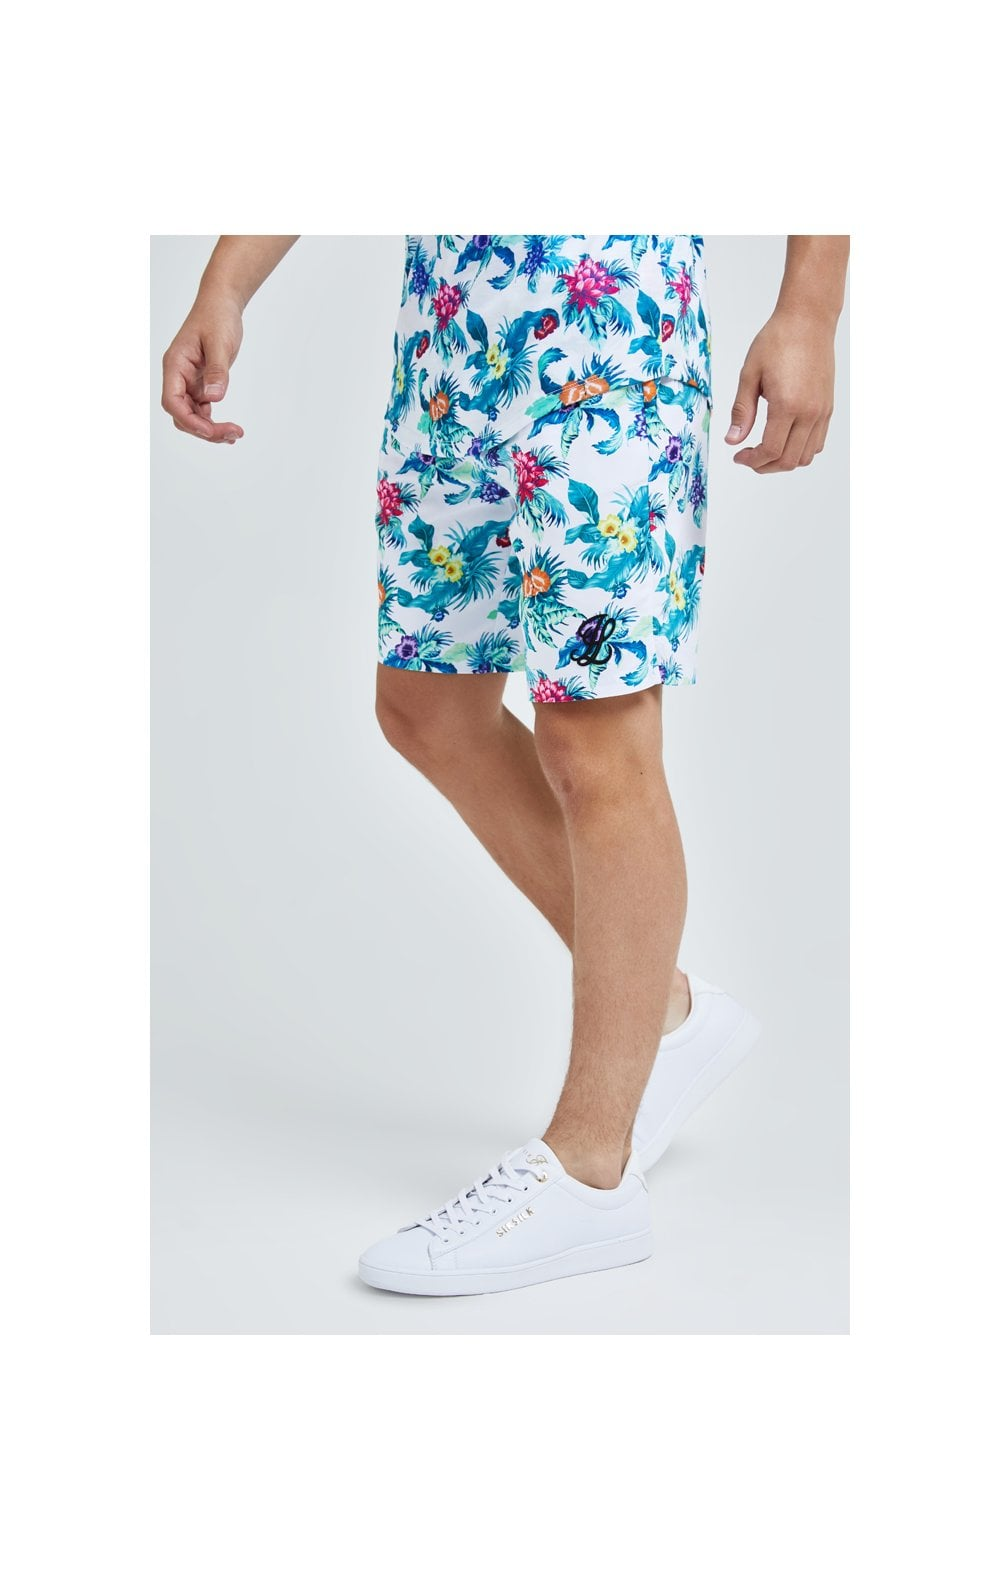 Illusive London Swim Shorts - White & Floral (1)